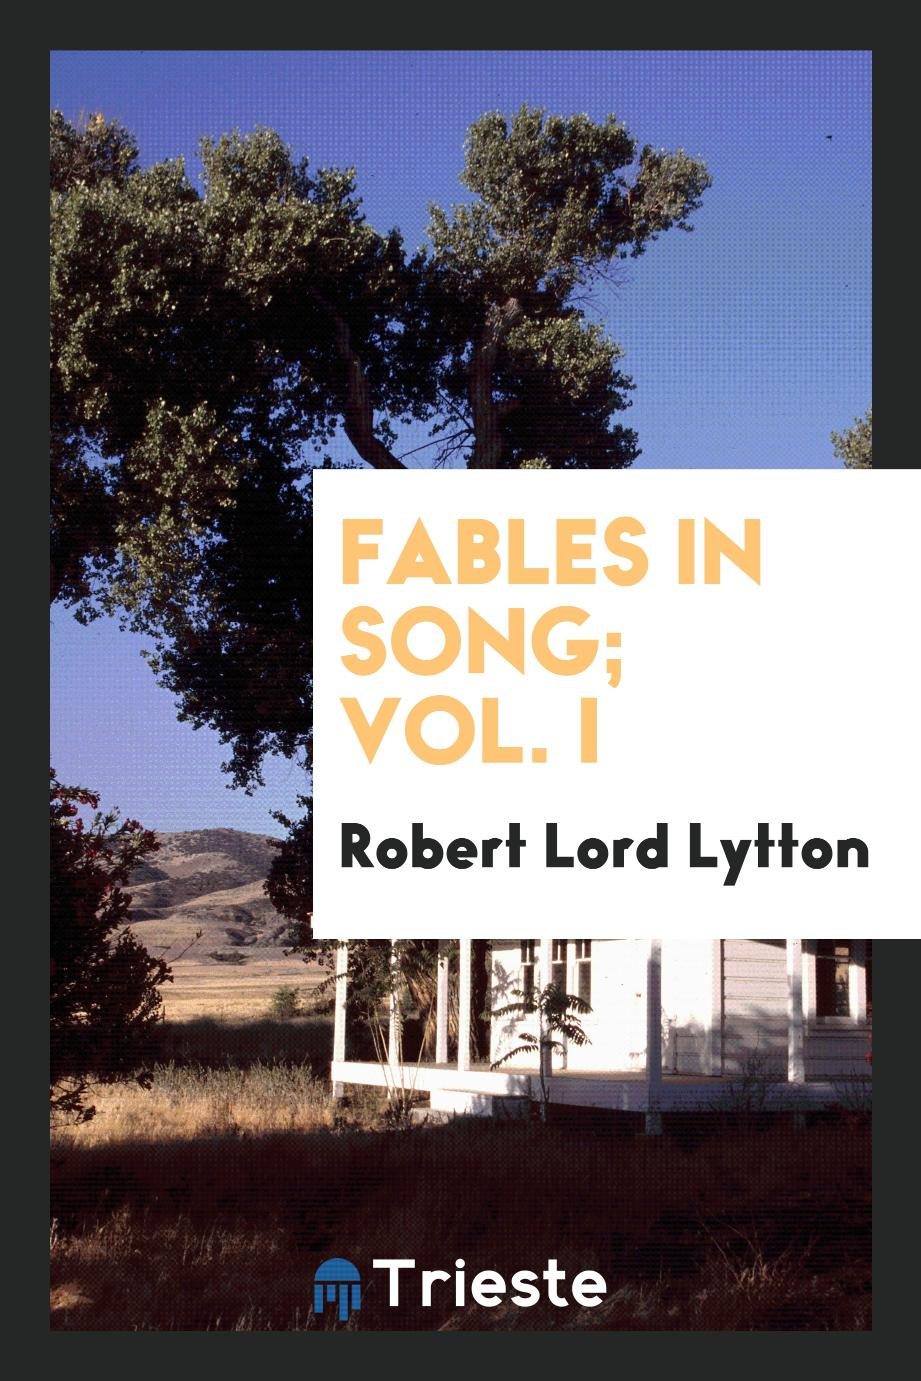 Fables in Song; Vol. I